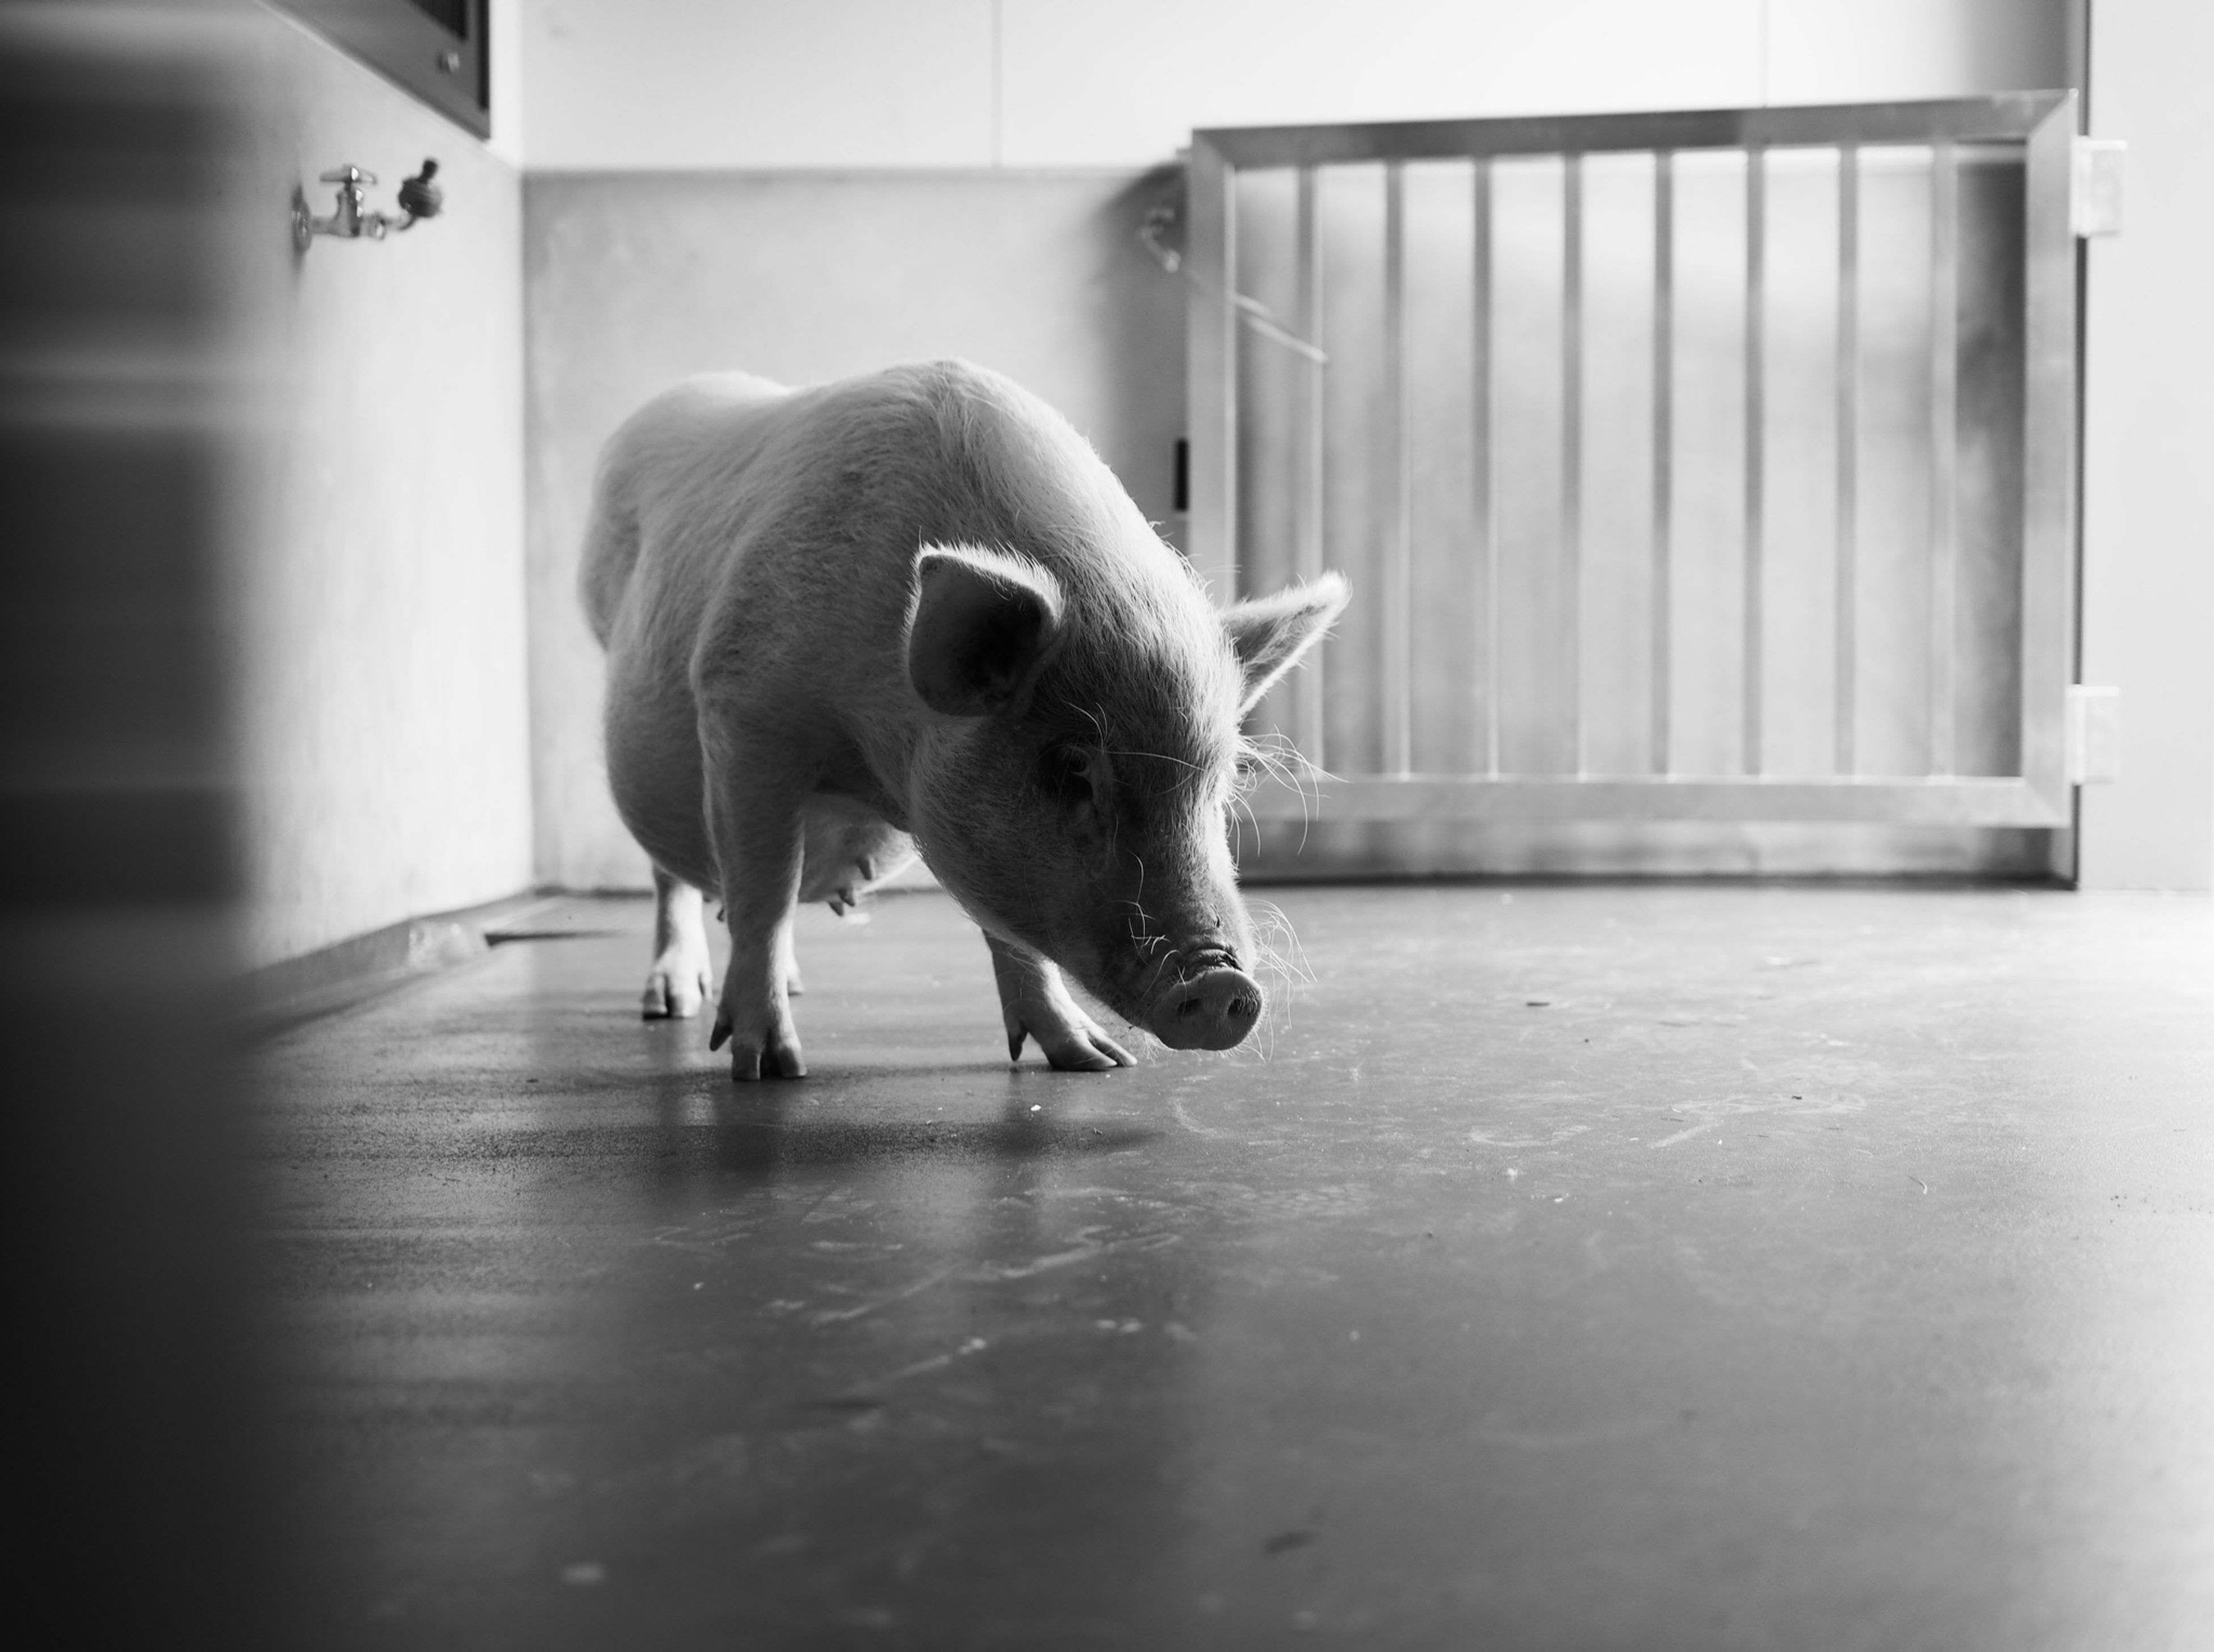 animal themes, one animal, domestic animals, pets, mammal, full length, indoors, dog, walking, door, built structure, side view, architecture, looking away, day, standing, white color, no people, zoology, front view